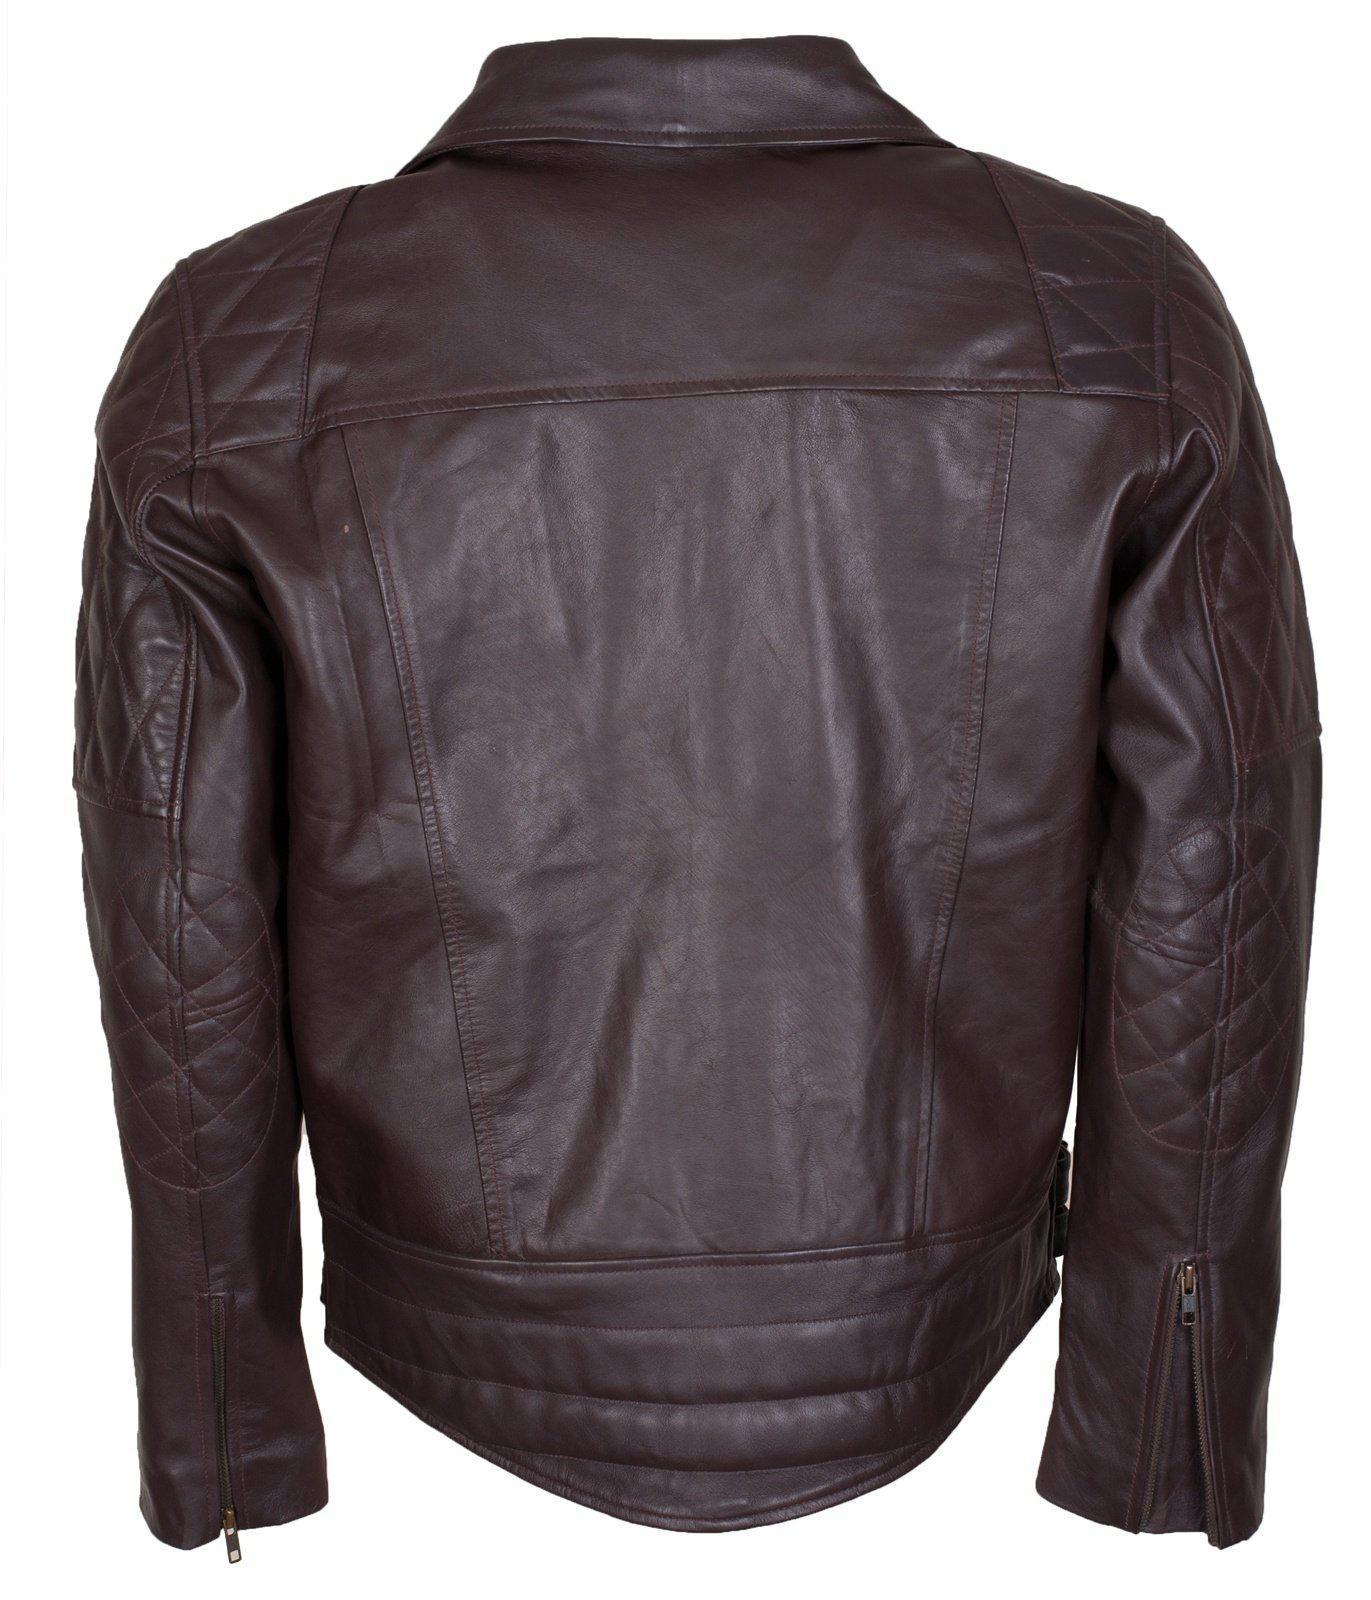 Diamond Pattern Leather Jacket